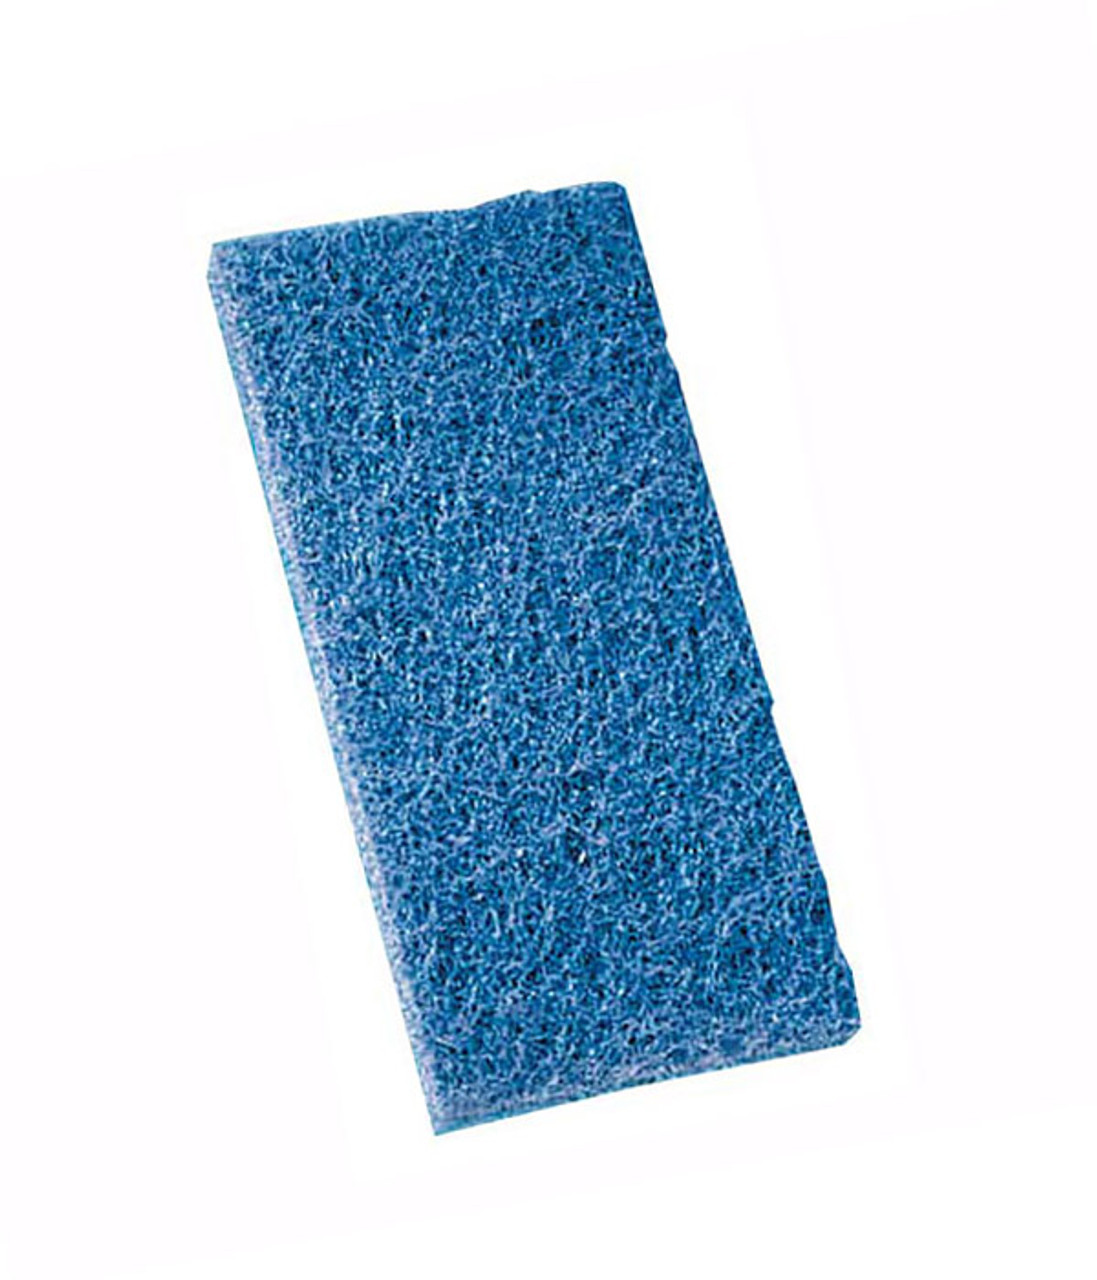 3M Doodlebug 8242 Blue Scrub Pad - For cleaning and medium duty scrubbing of hard surfaces.